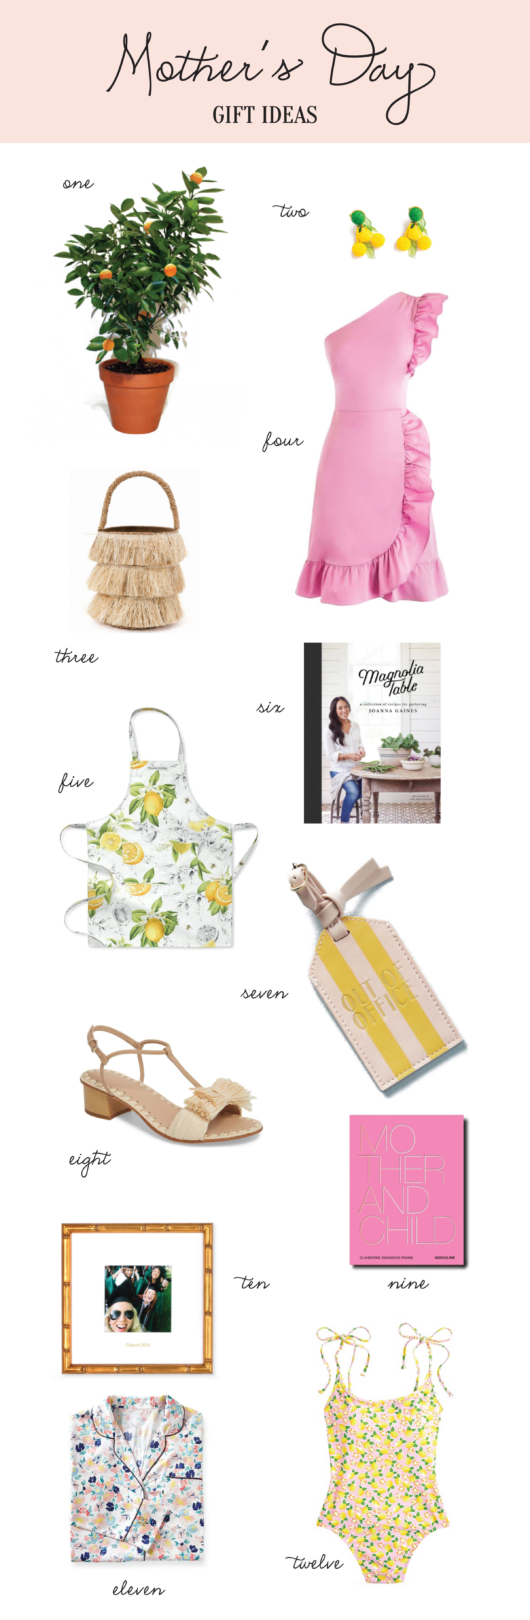 Holiday: Mother's Day Gift Ideas by Palm Beach Lately